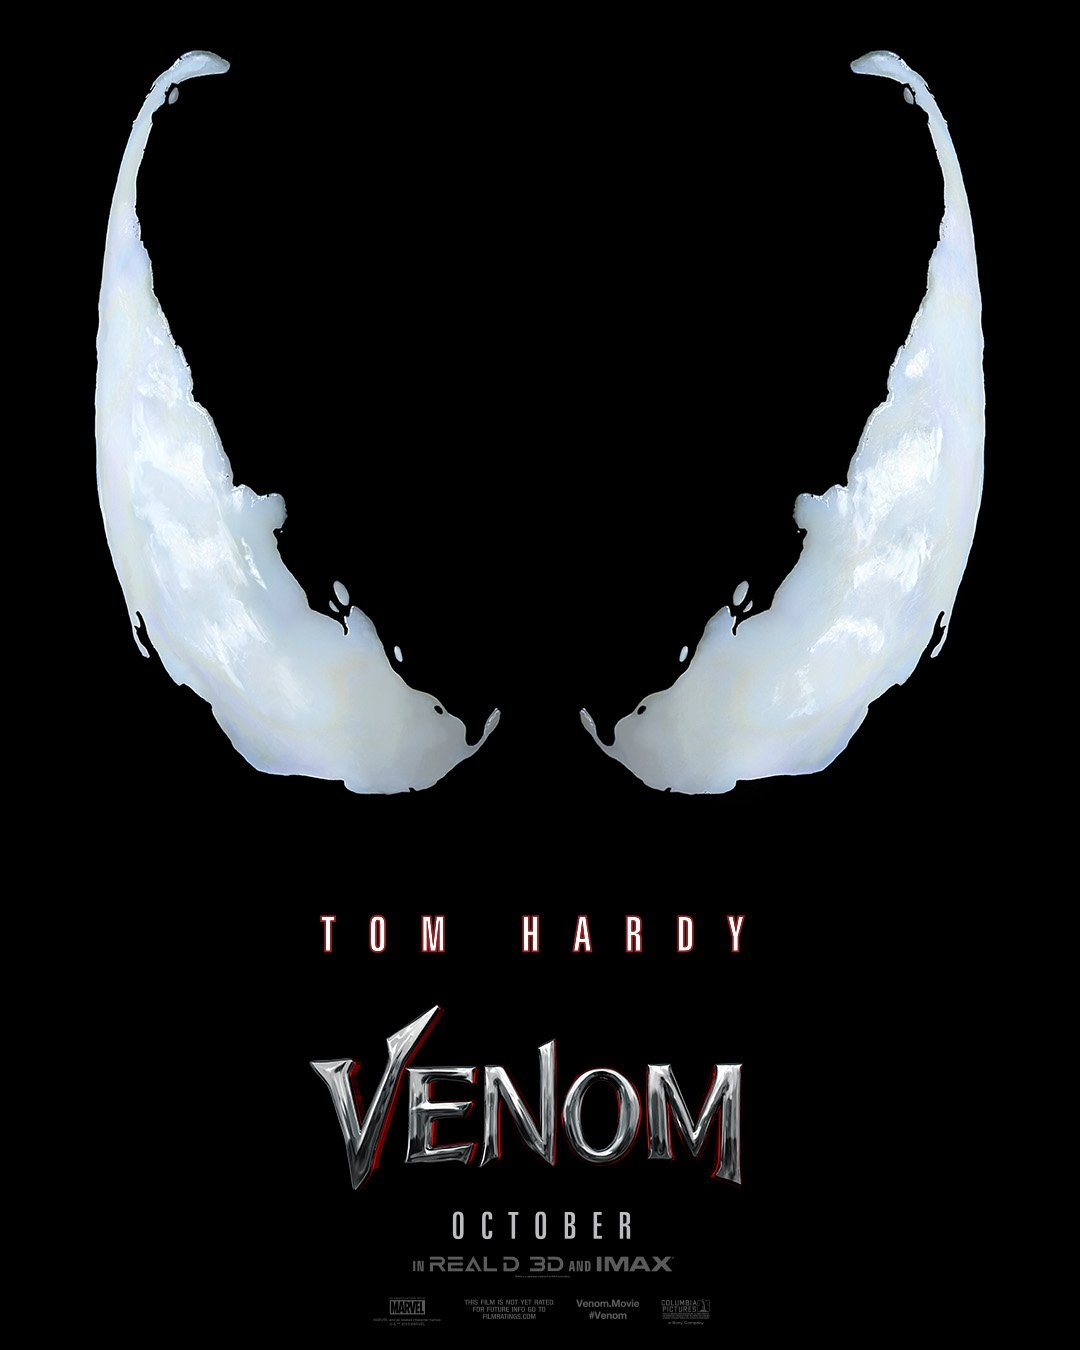 The official poster for Venom